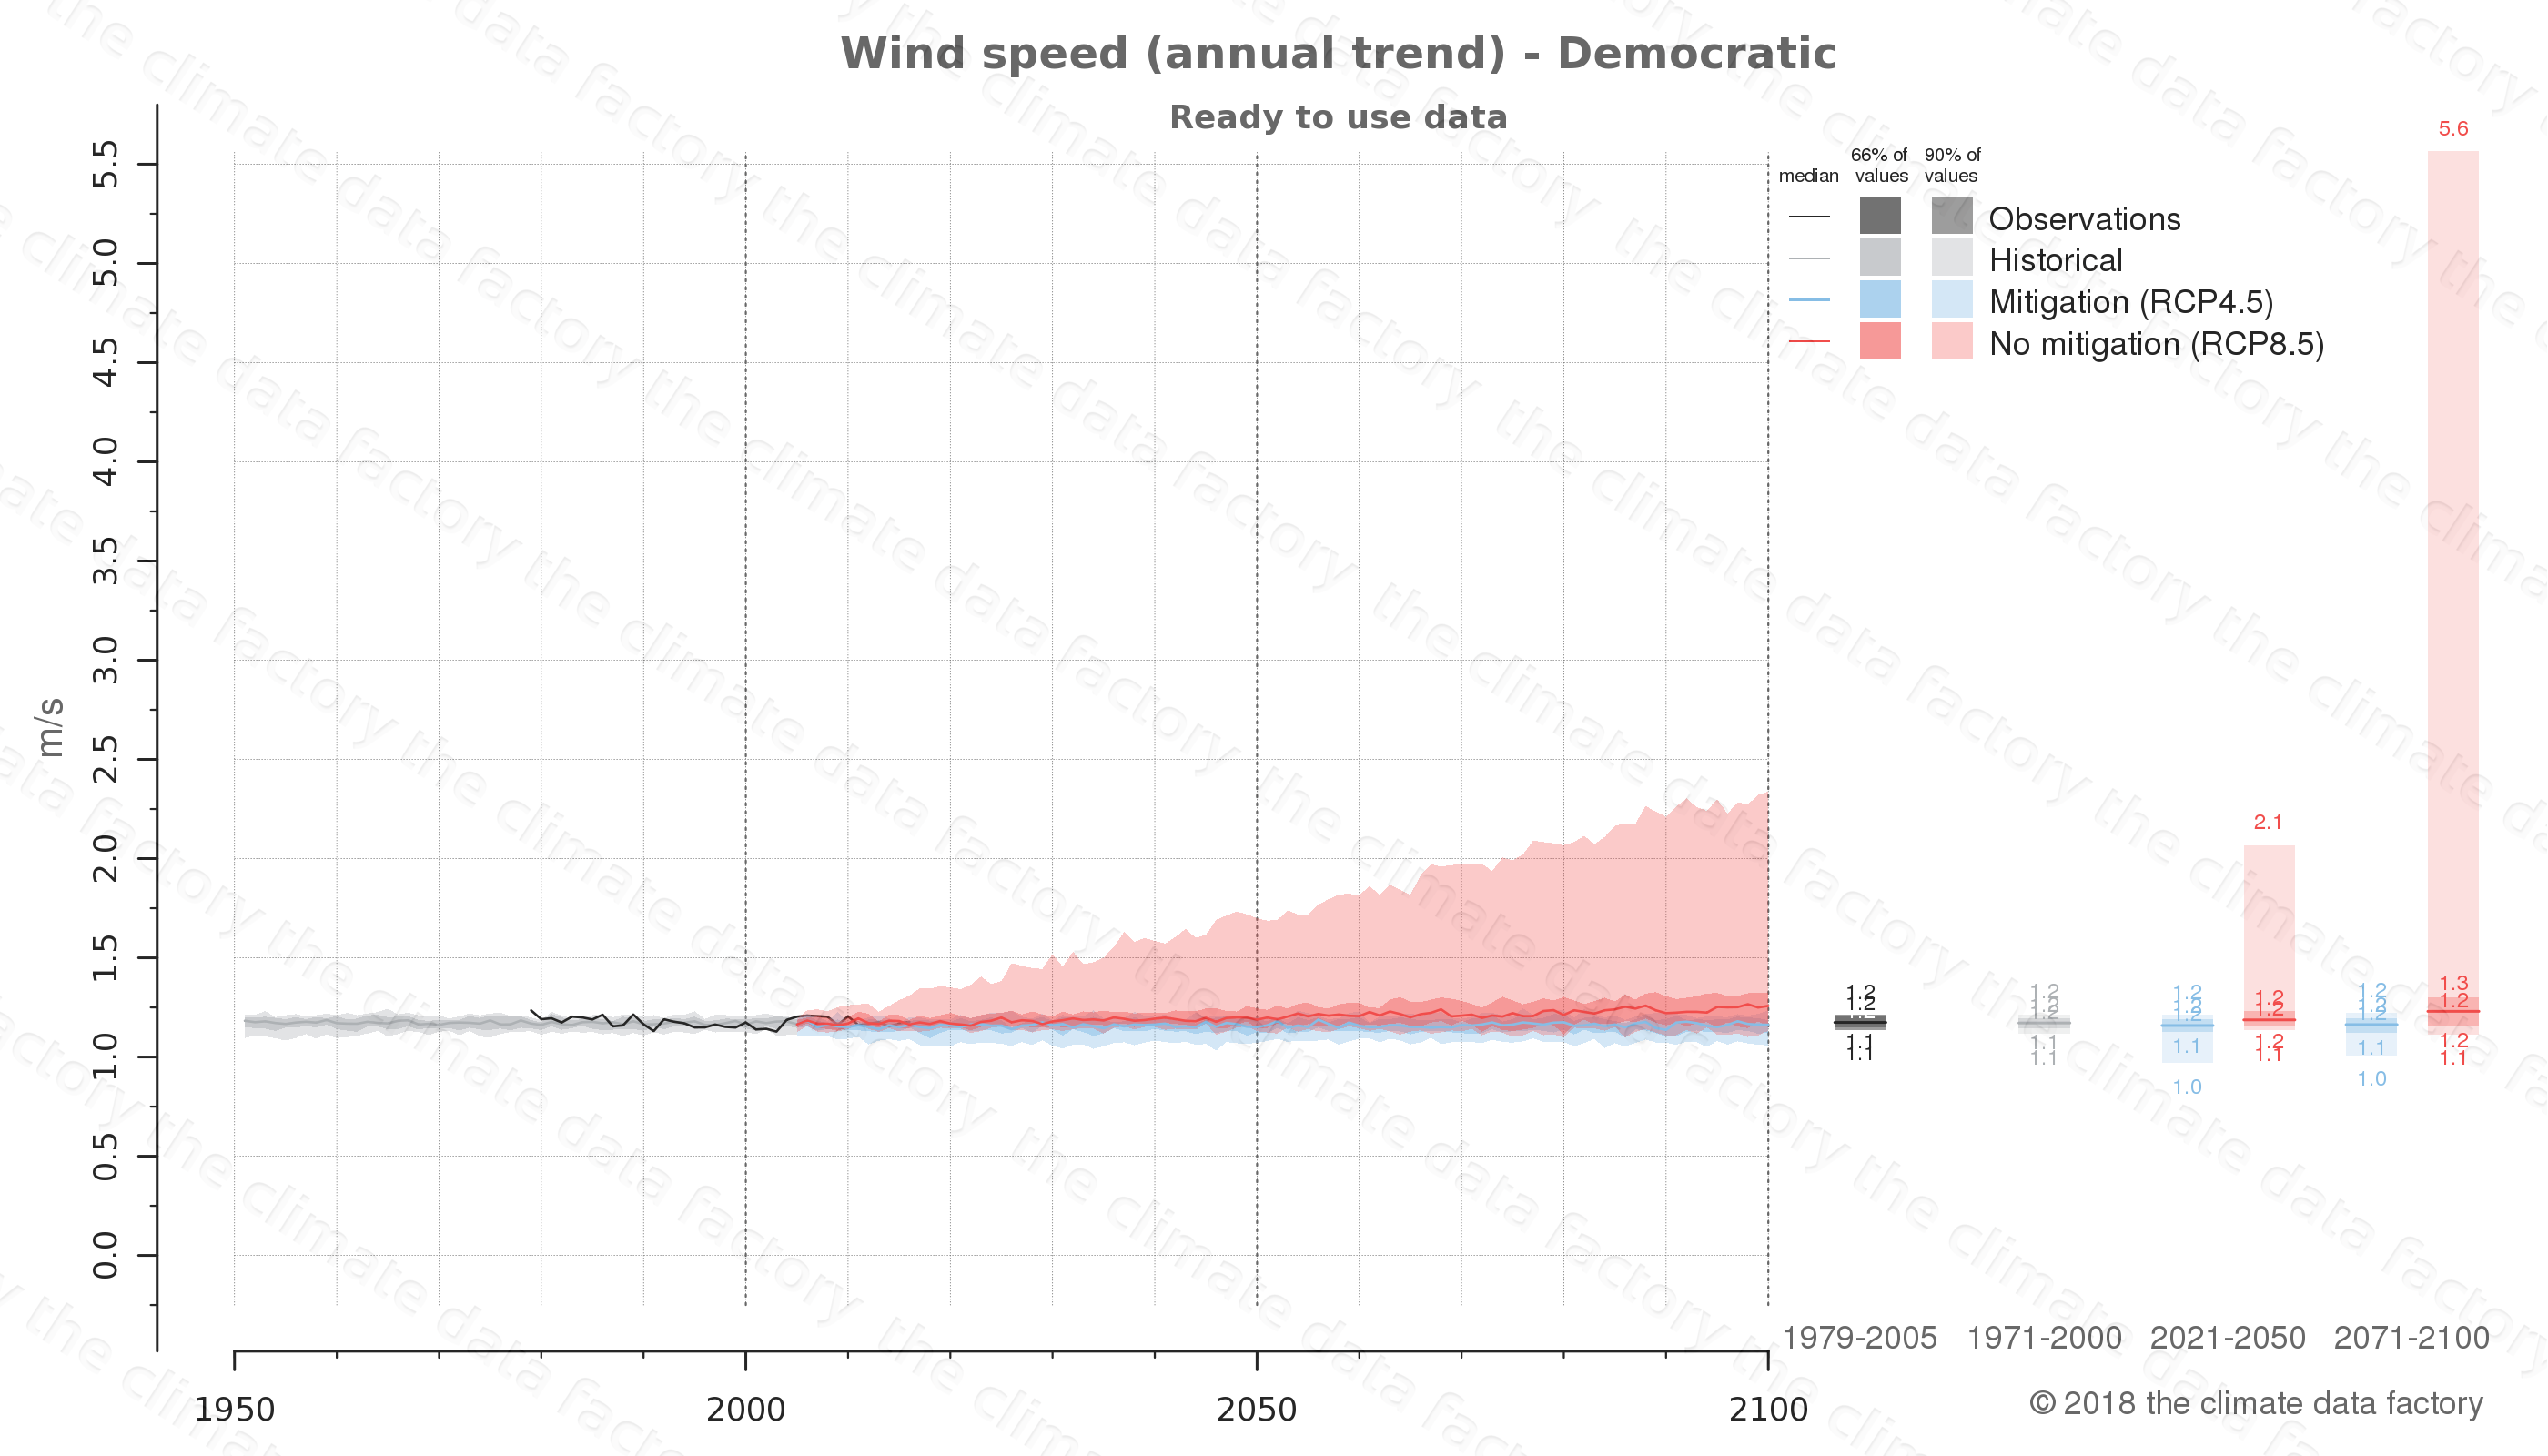 climate change data policy adaptation climate graph country data wind speed democratic republic of the congo africa